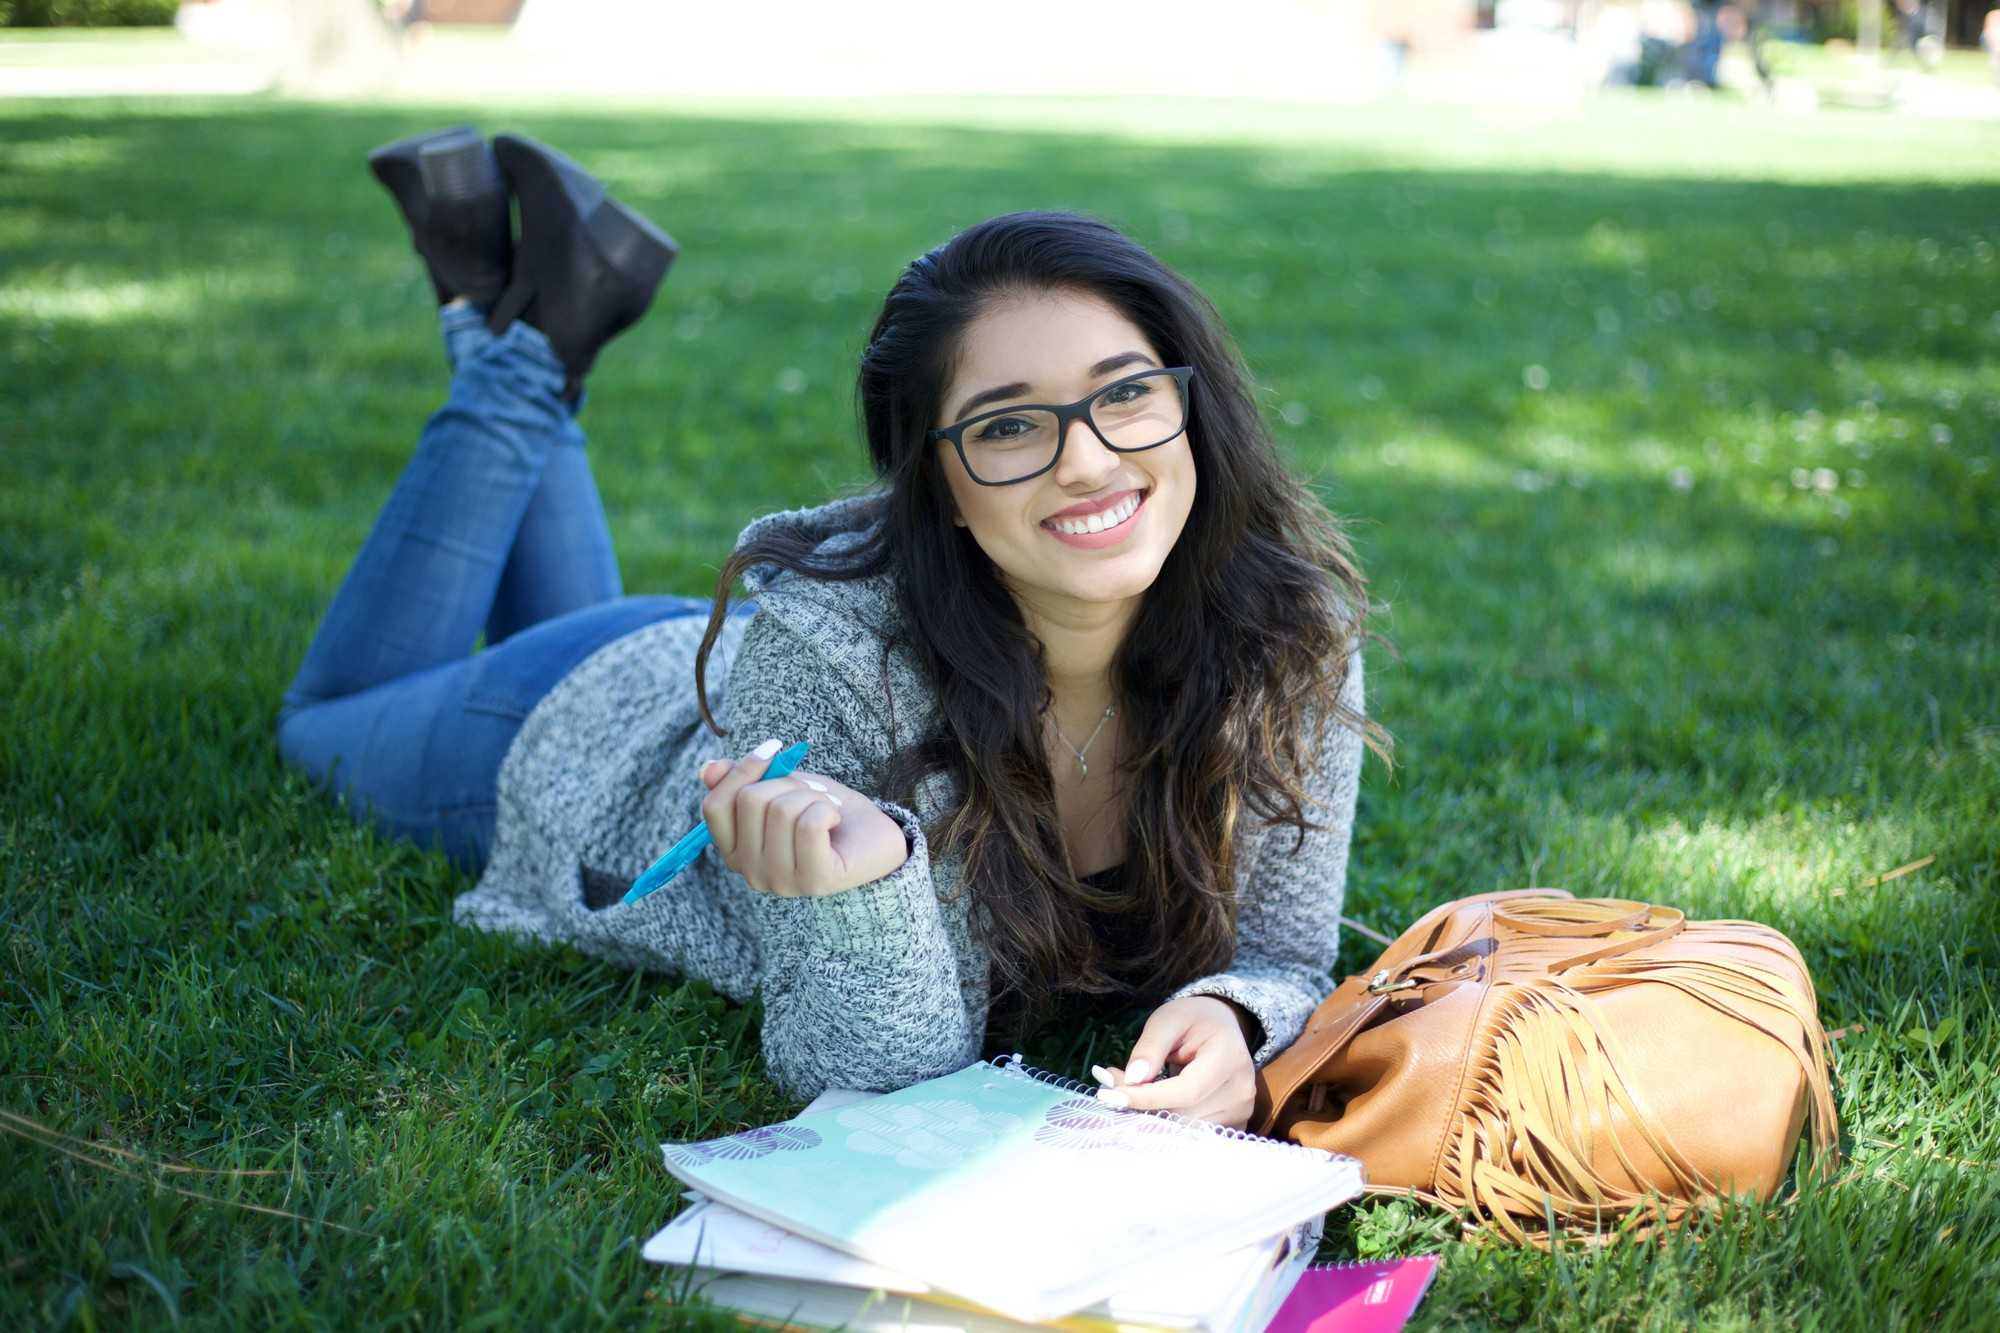 Yisel Cabrera, 19 years old with a major in communication, has been attending El Camino College for two years. Photo credit: Gabriela Better